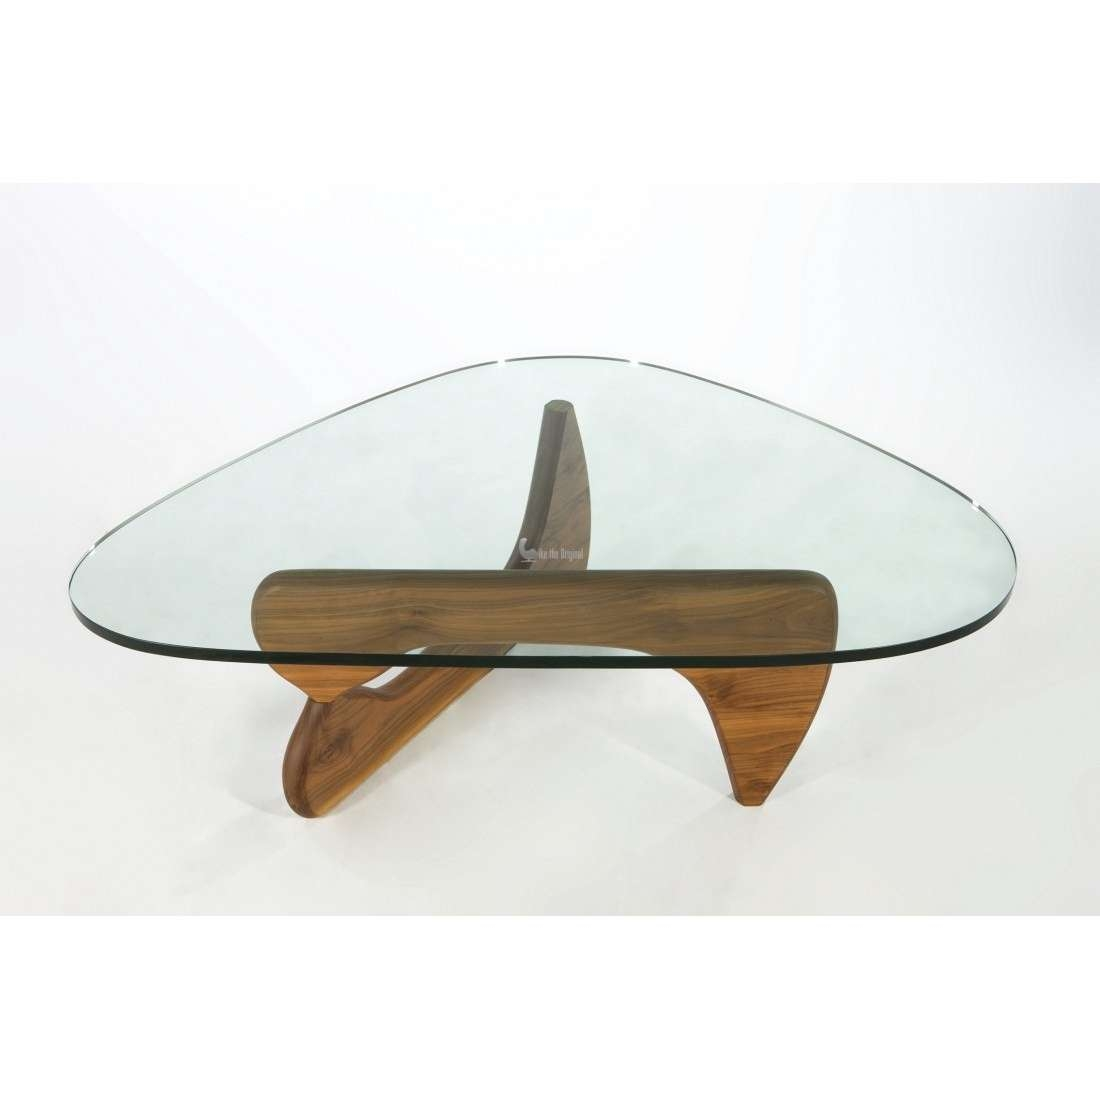 Coffee Tables : Small Glass Side Tables For Living Room Intended For Current Small Glass Coffee Tables (View 4 of 20)